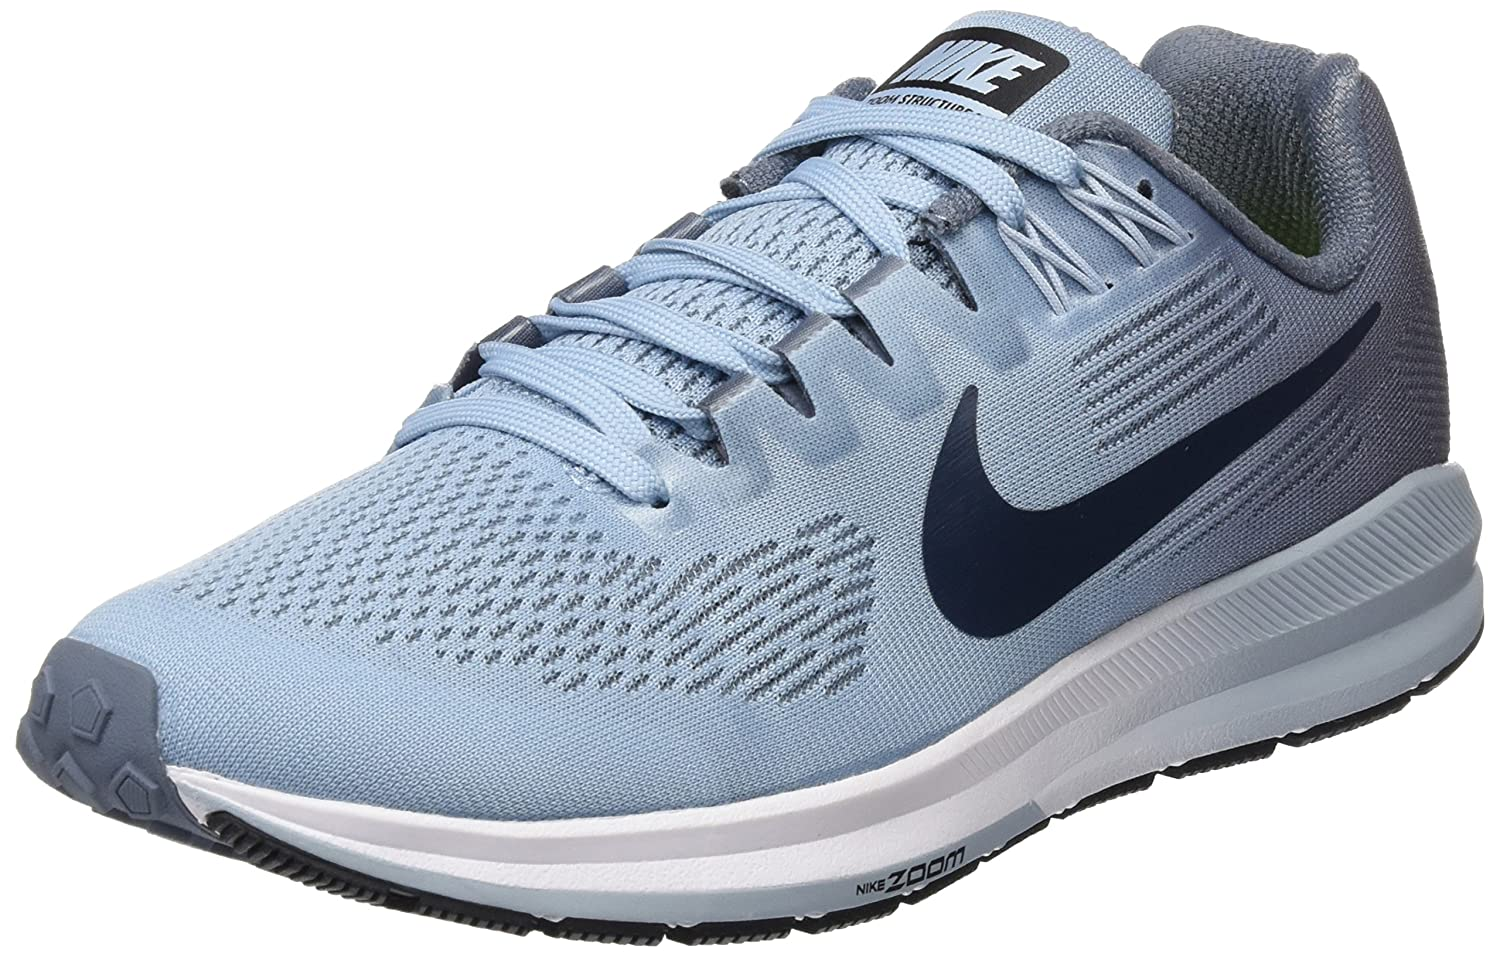 NIKE Women's Air Zoom Structure 21 Running Shoe B075Q494XB 10.5 B(M) US|Armory Blue/Armory Navy-cirrus Blue